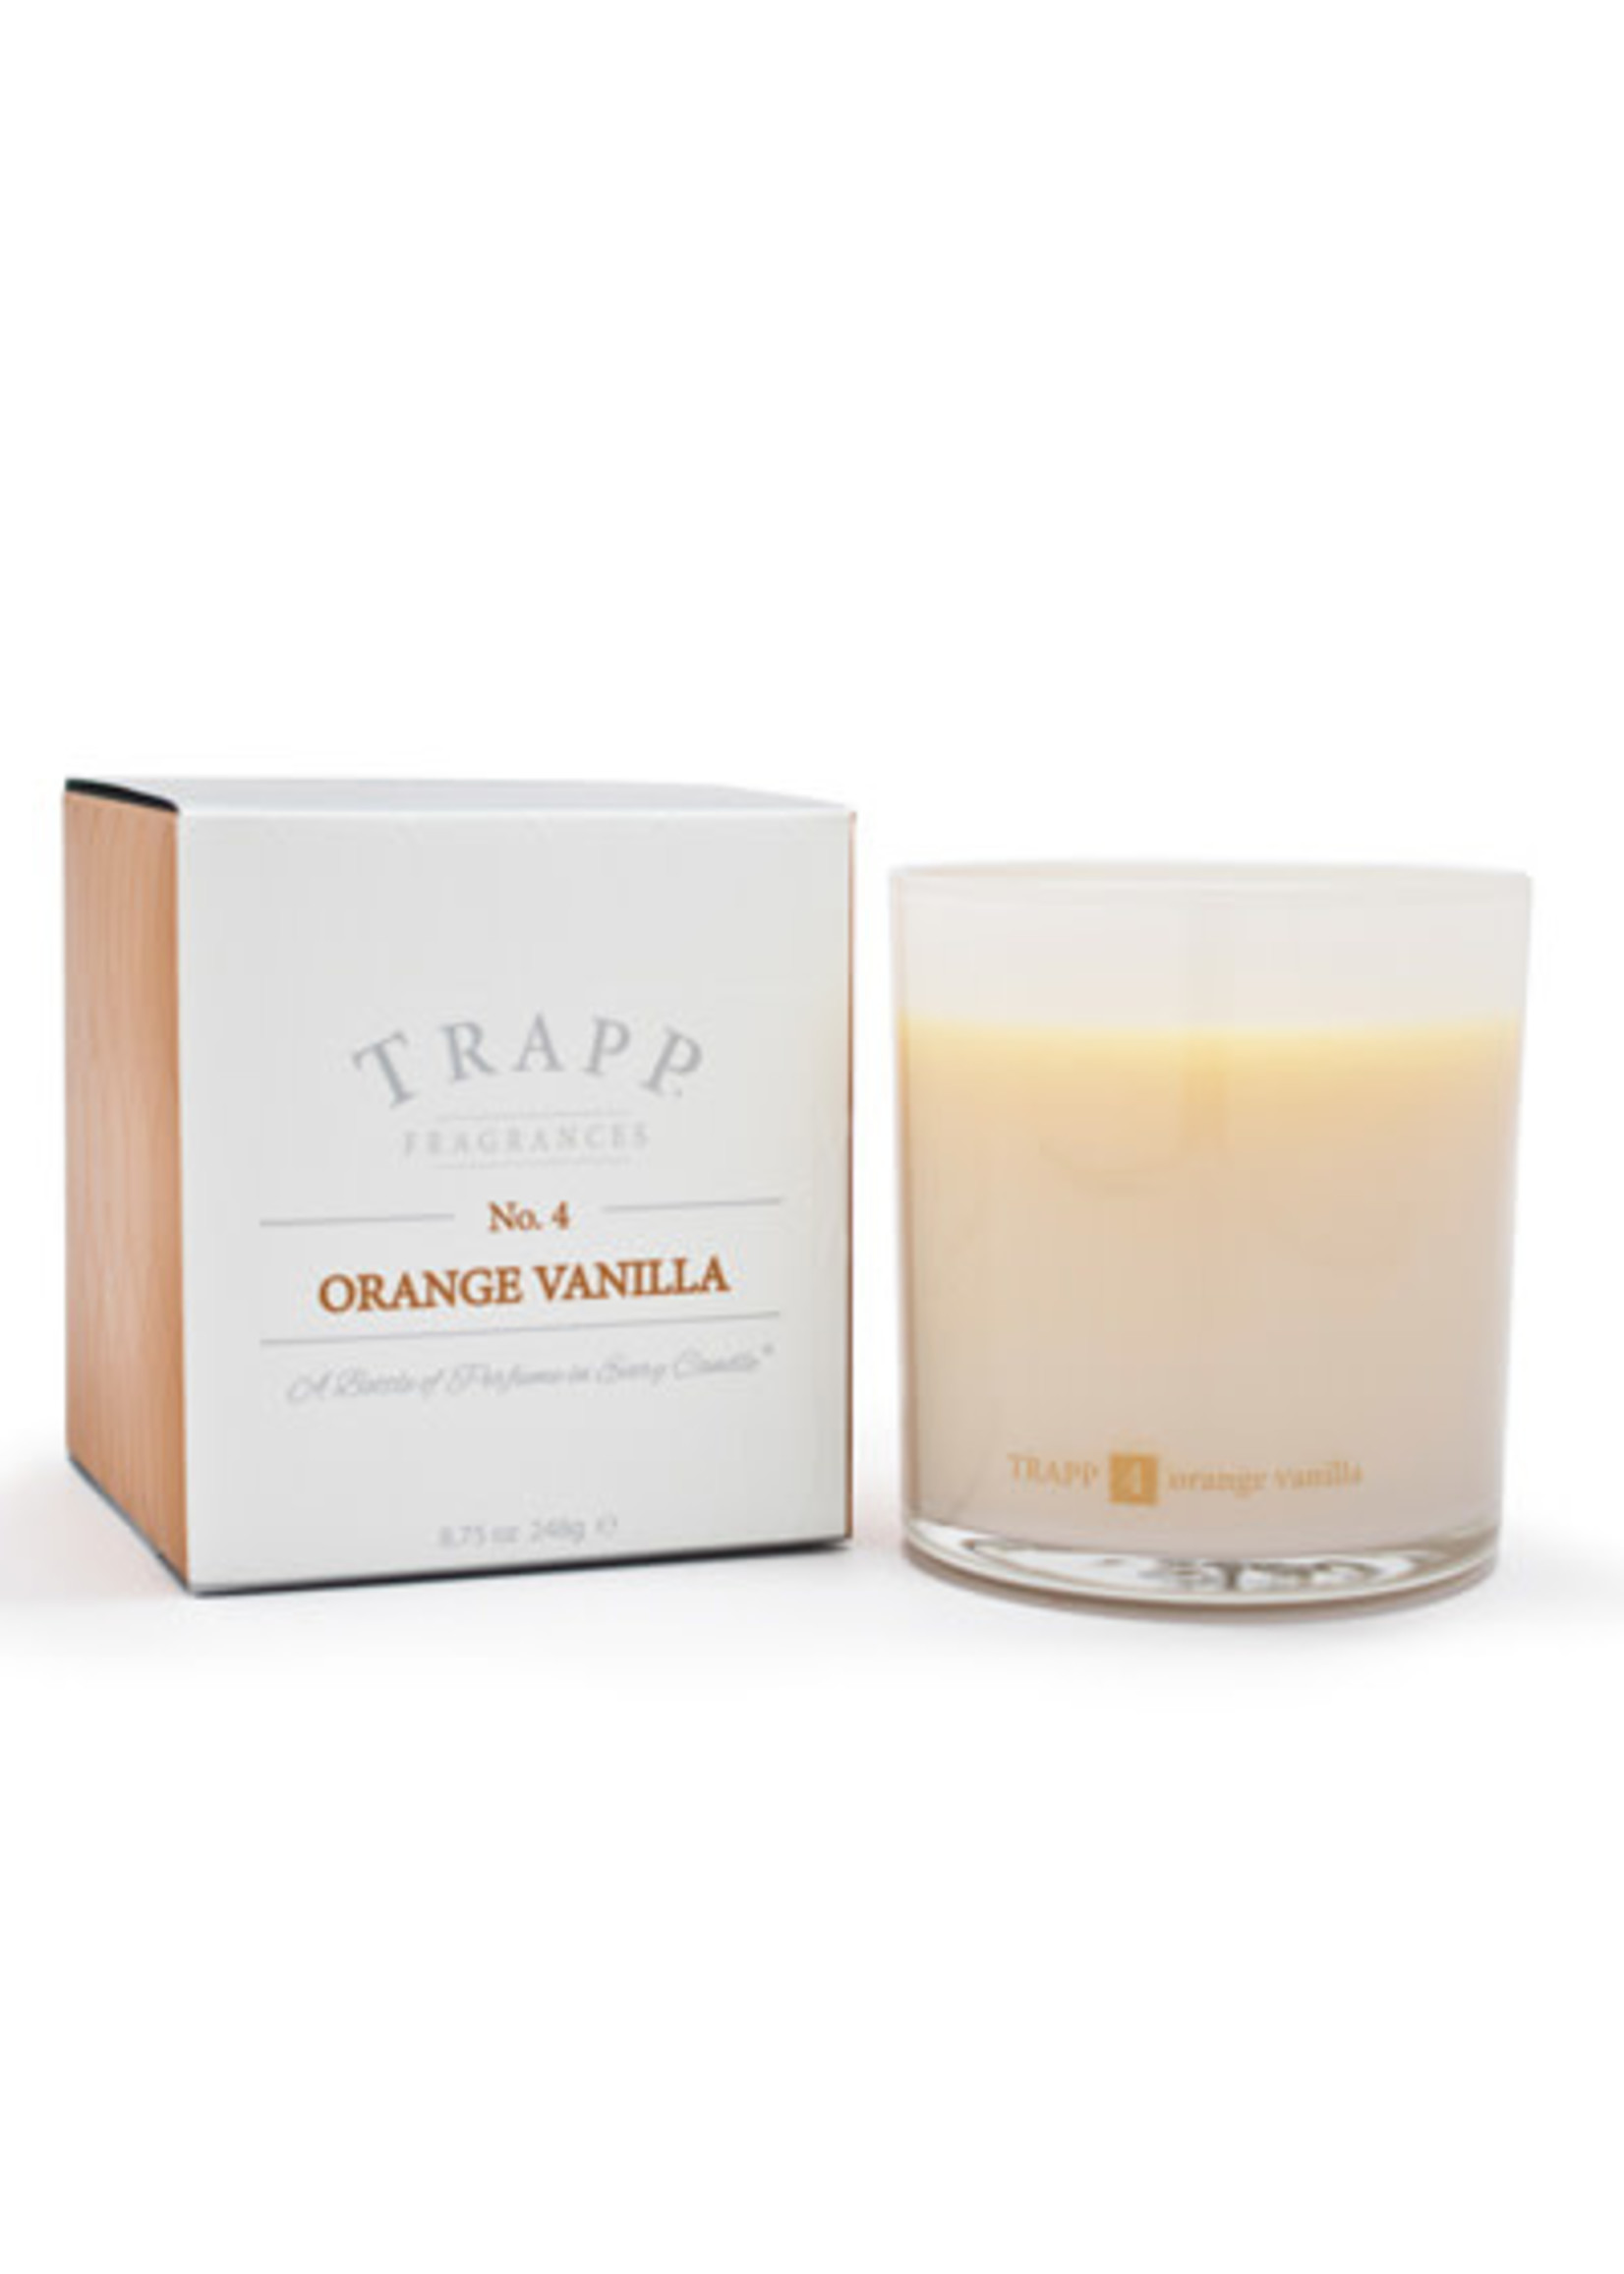 Trapp Candles Ambiance Collection - No. 4 Orange Vanilla - 8.75 oz. Poured Candle